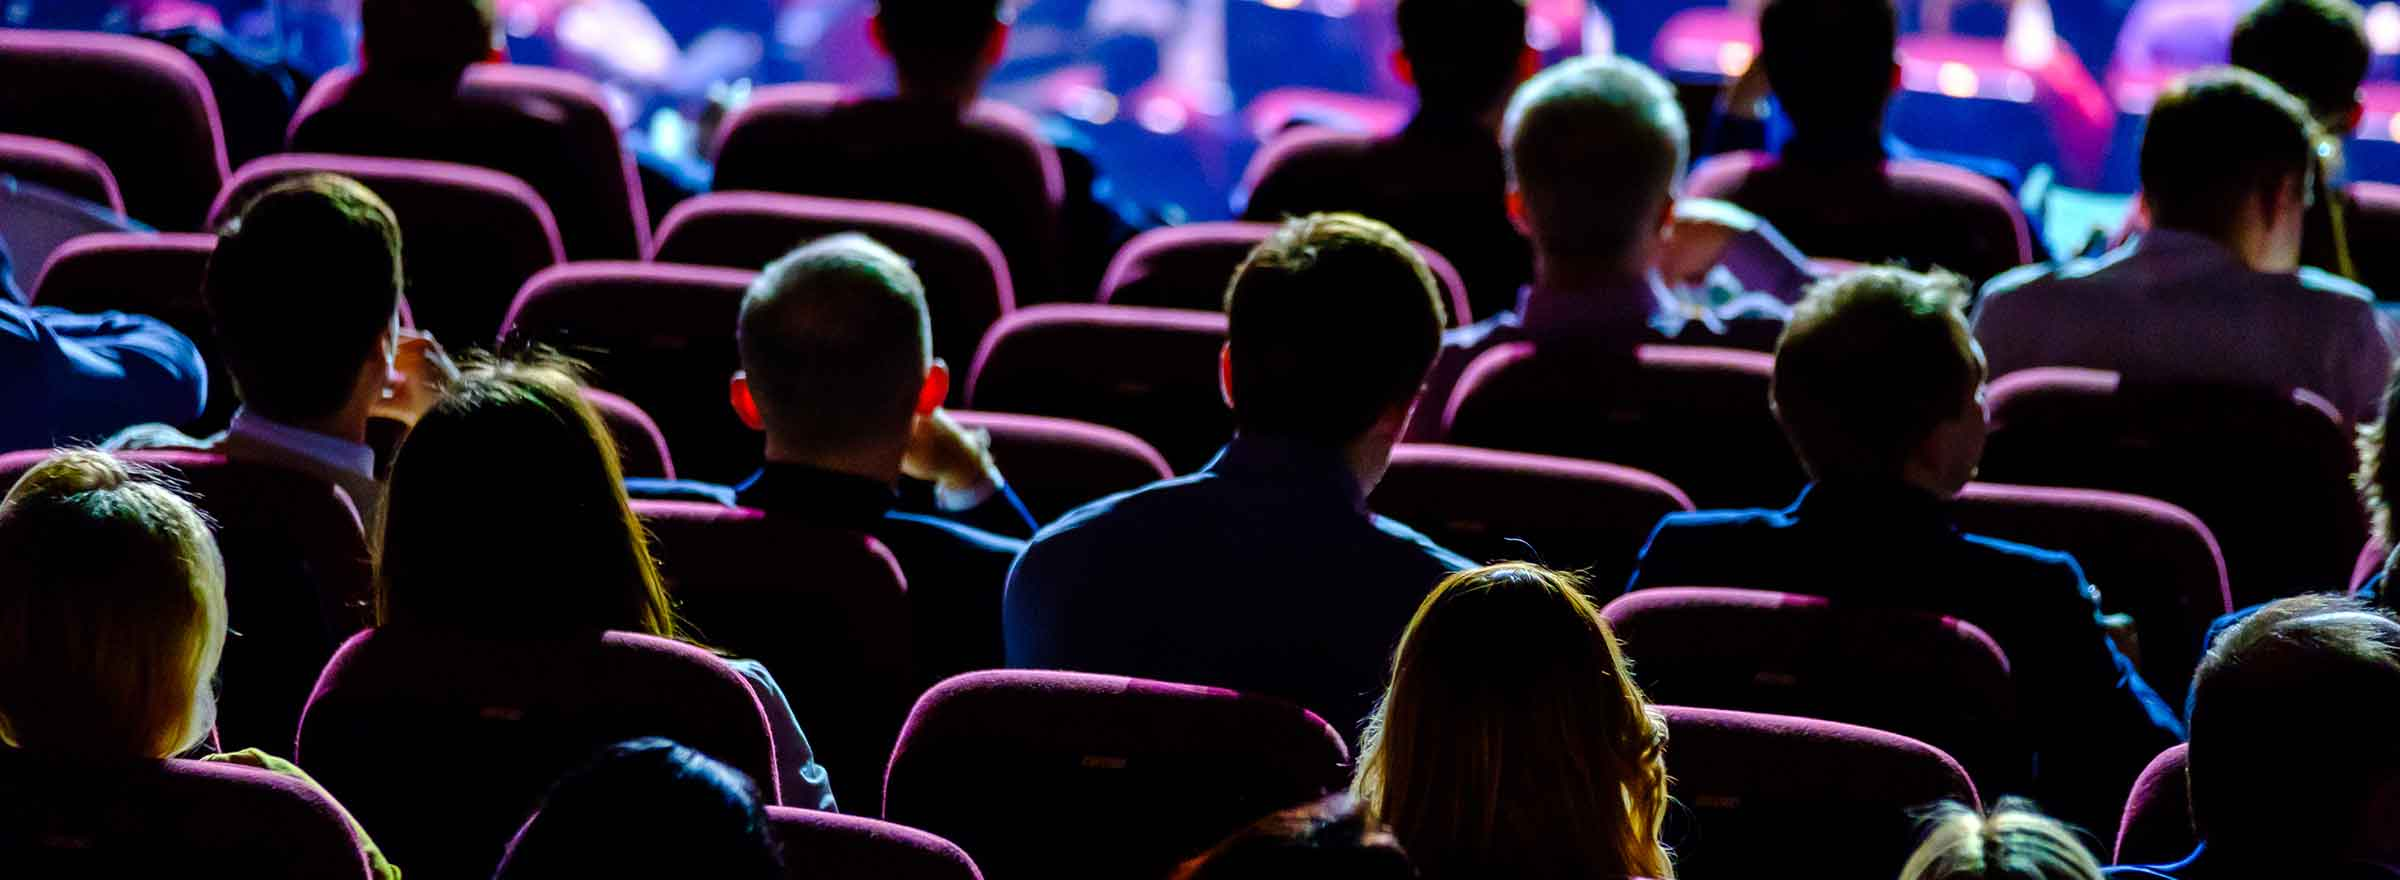 rear view of an audience in theater seating with light coming from in front of them